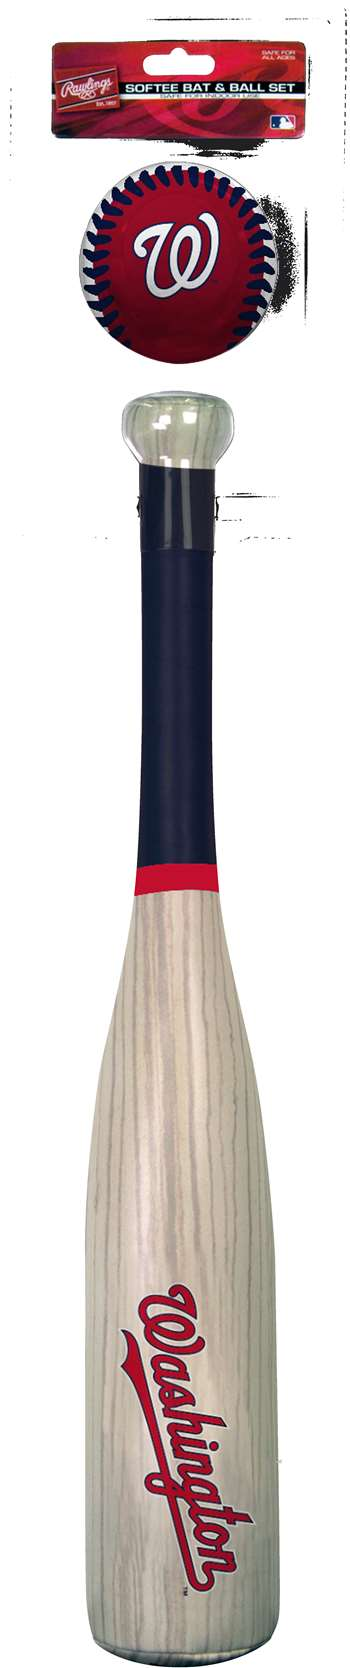 MLB Washington Nationals Grand Slam Softee Bat and Ball Set (Wood Grain)